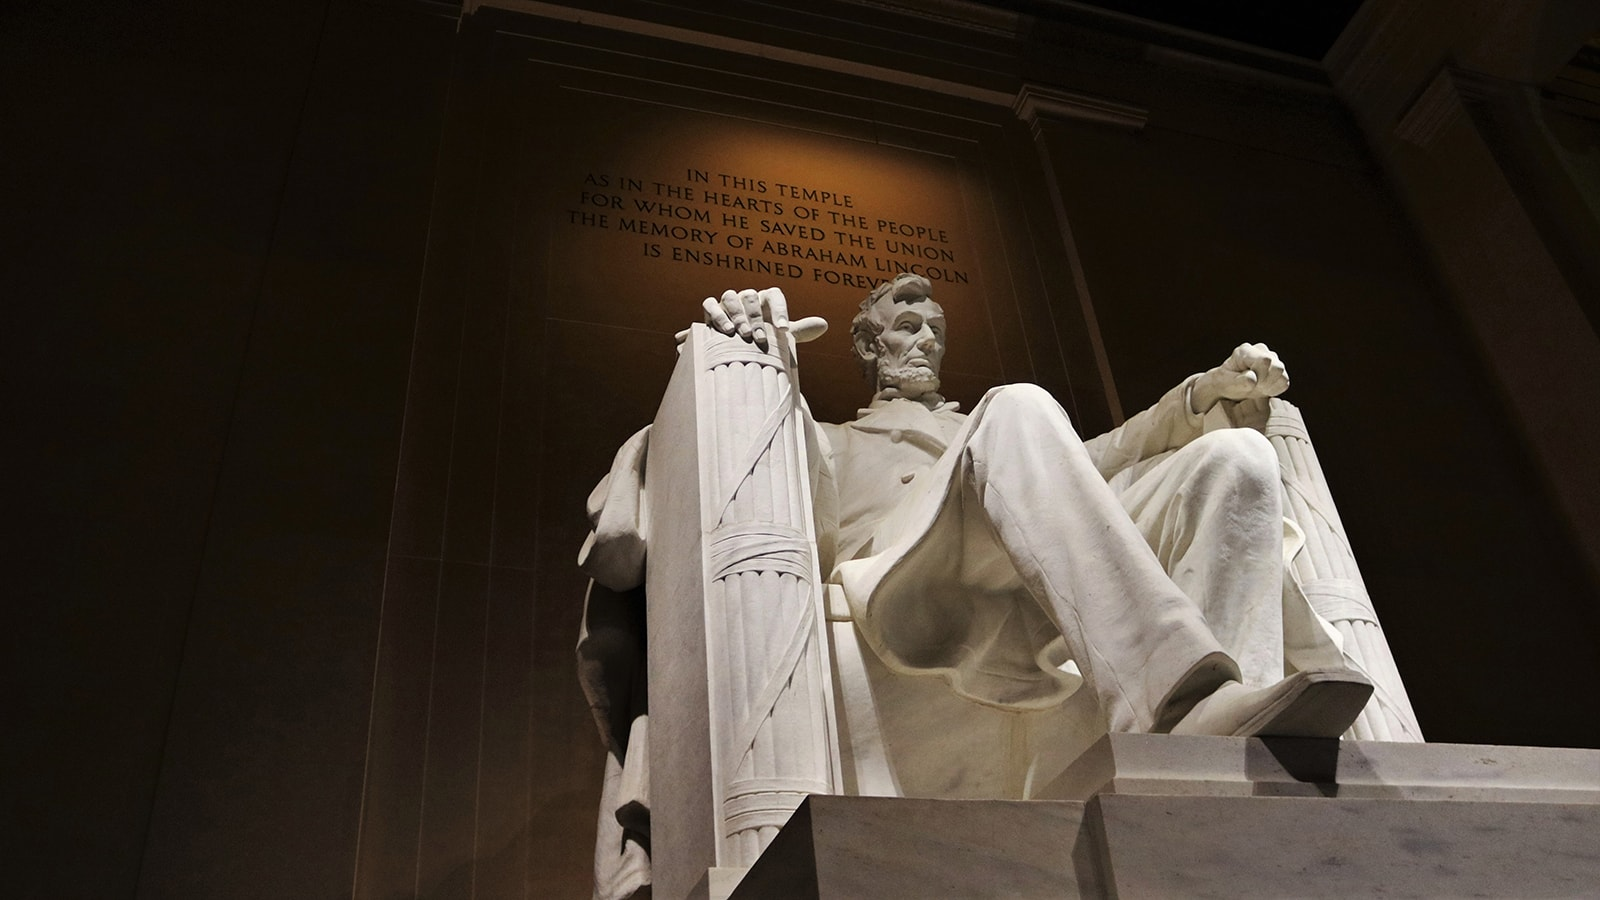 Photograph of the Statue of Abraham Lincoln at the Lincoln Memorial